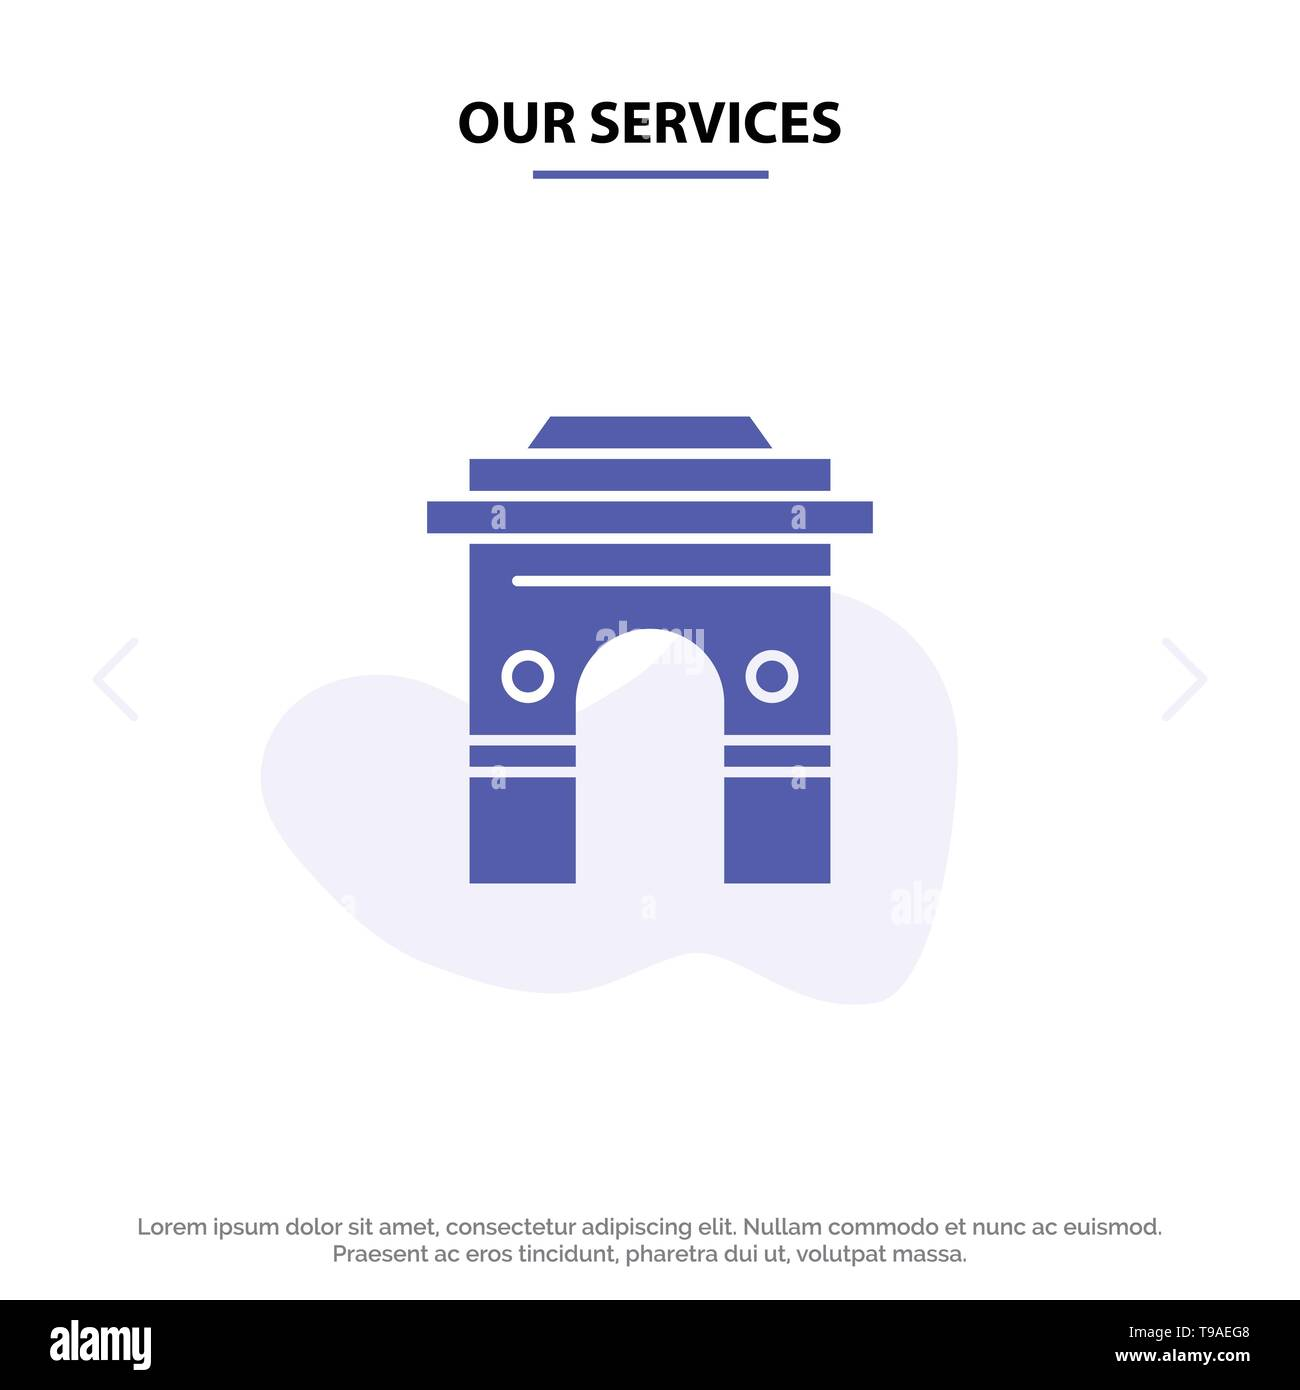 Our Services Culture, Global, Hinduism, India, Indian, Srilanka, Temple Solid Glyph Icon Web card Template - Stock Image